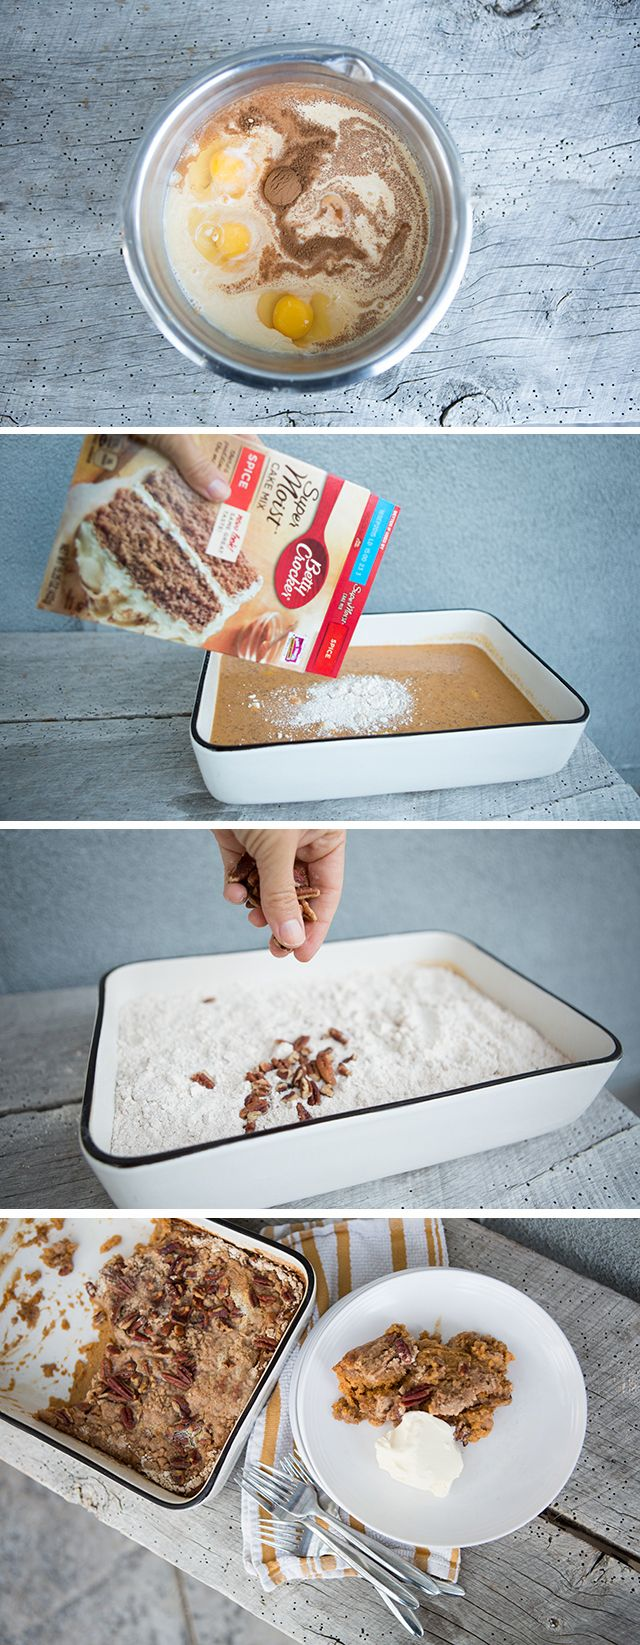 If you've never heard, can I introduce you to the concept of 'dump cake?' While the name is quite unflattering, the concept is genius! The cake consists of several pantry ingredients and some eggs…involves a few stirs and about an hour in the oven. And all the busy moms rejoiced! Any time I have to …